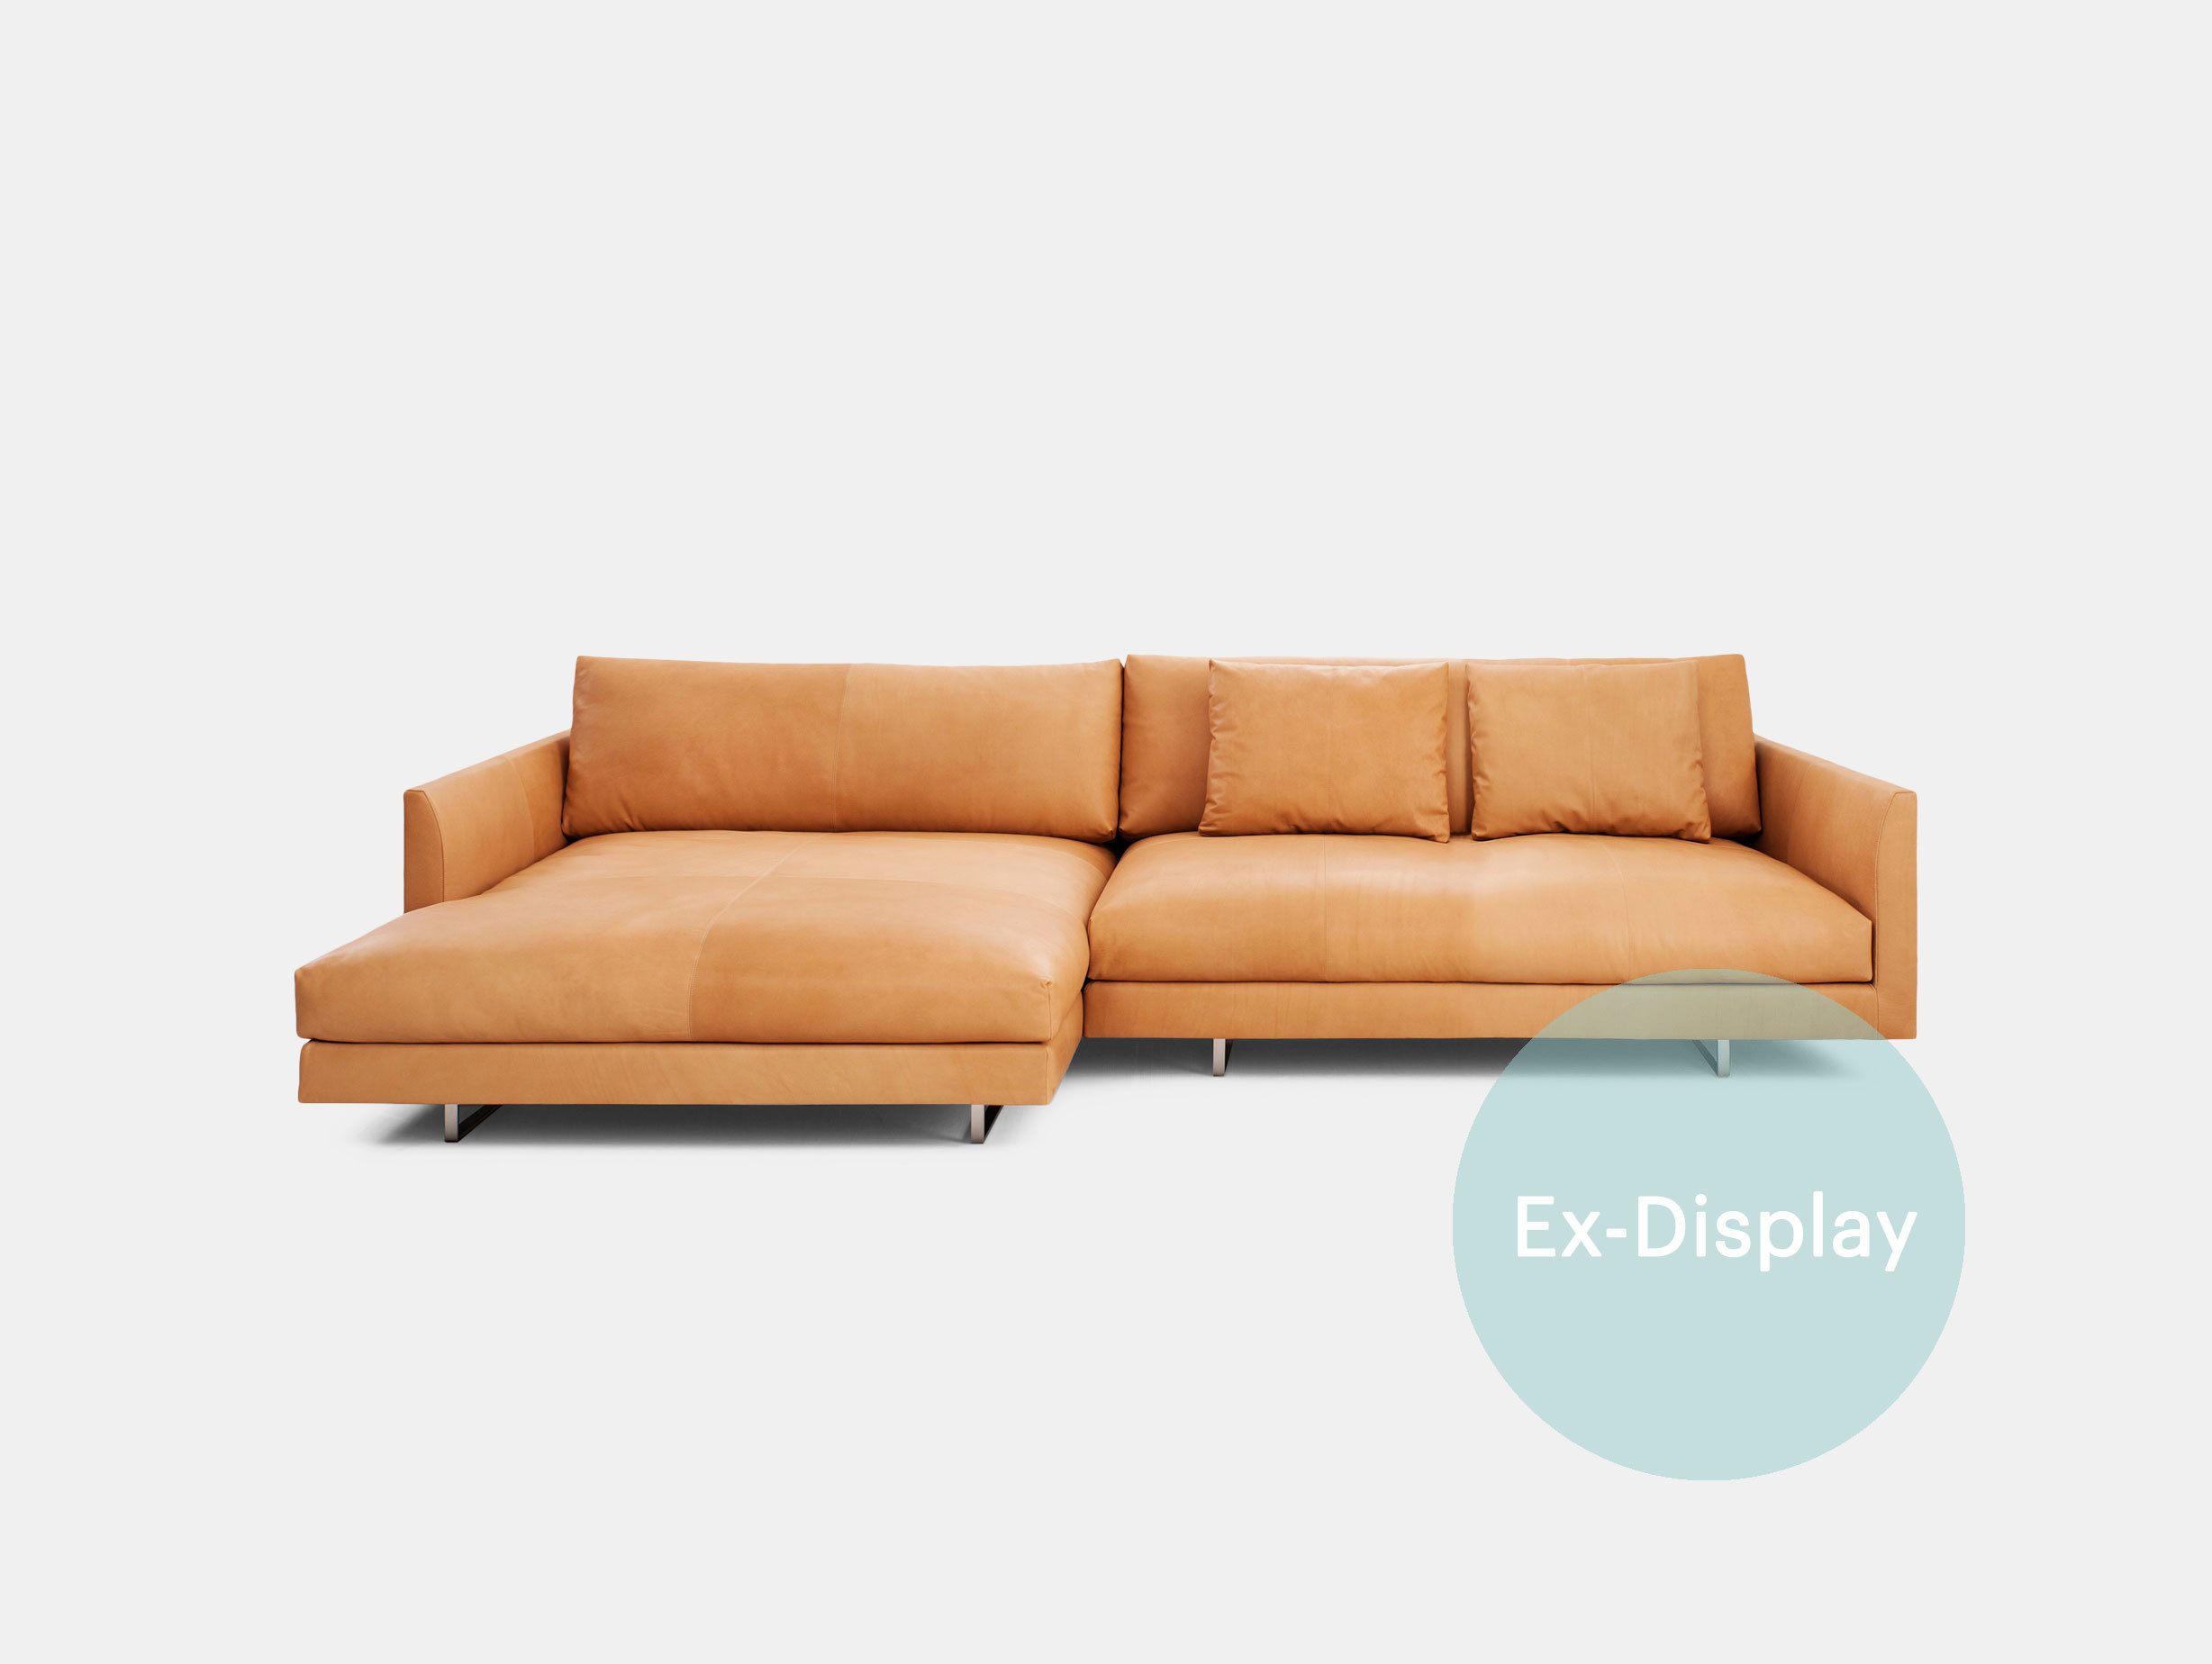 Axel XL Sofa / 55% off in our Summer Sale at £3950 image 1